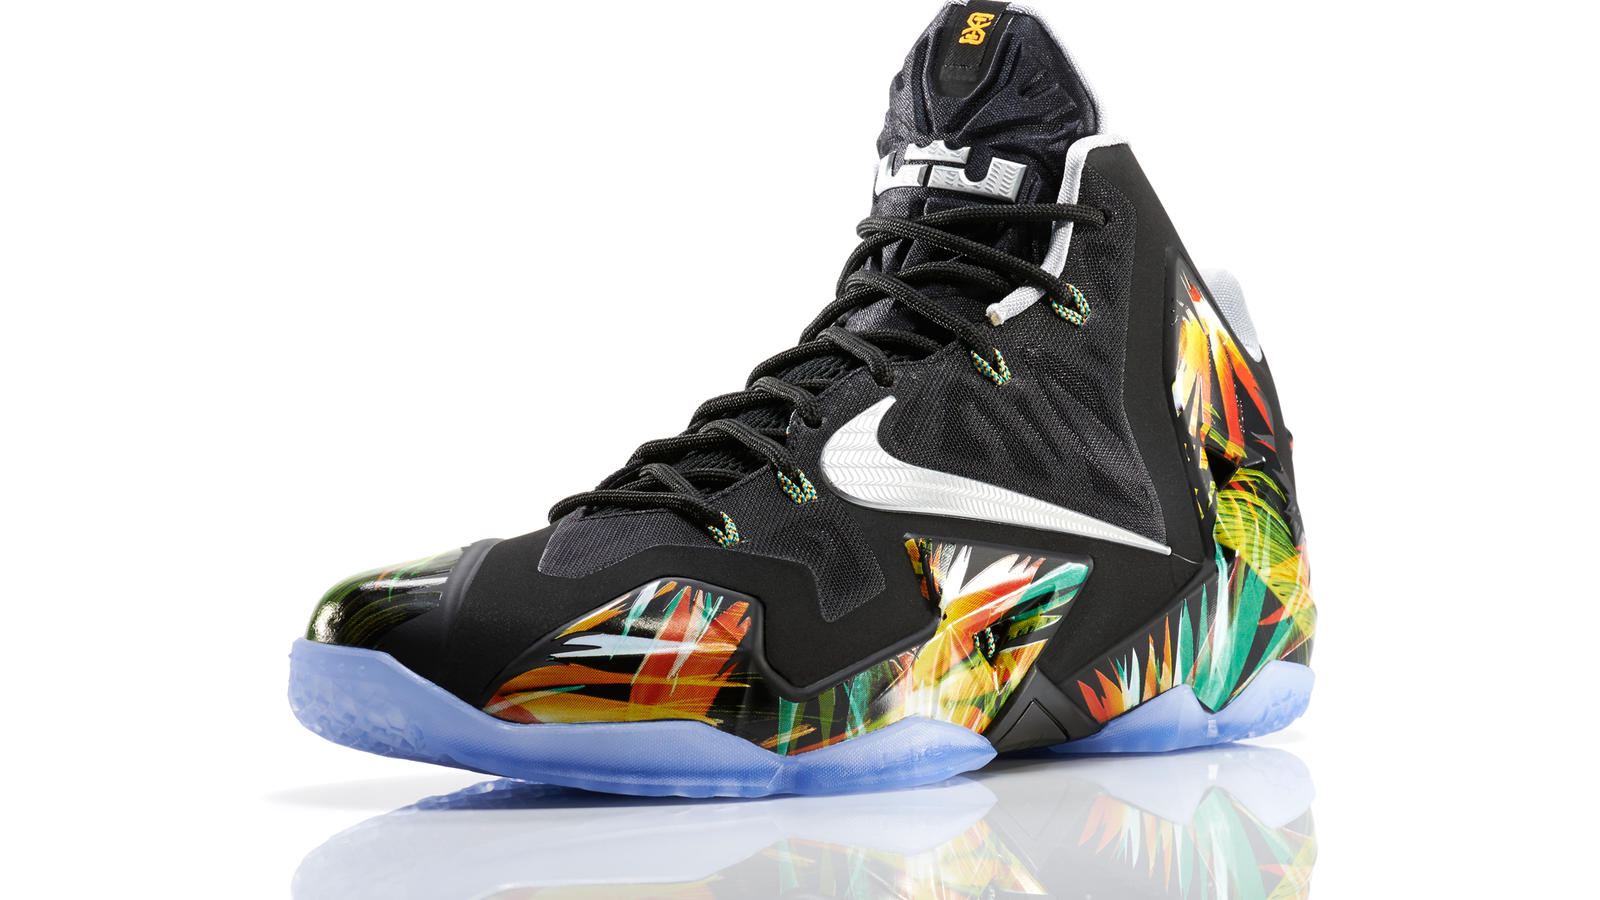 timeless design 9f616 991a3 New LEBRON 11 Pays Homage to Florida's Everglades Region ...